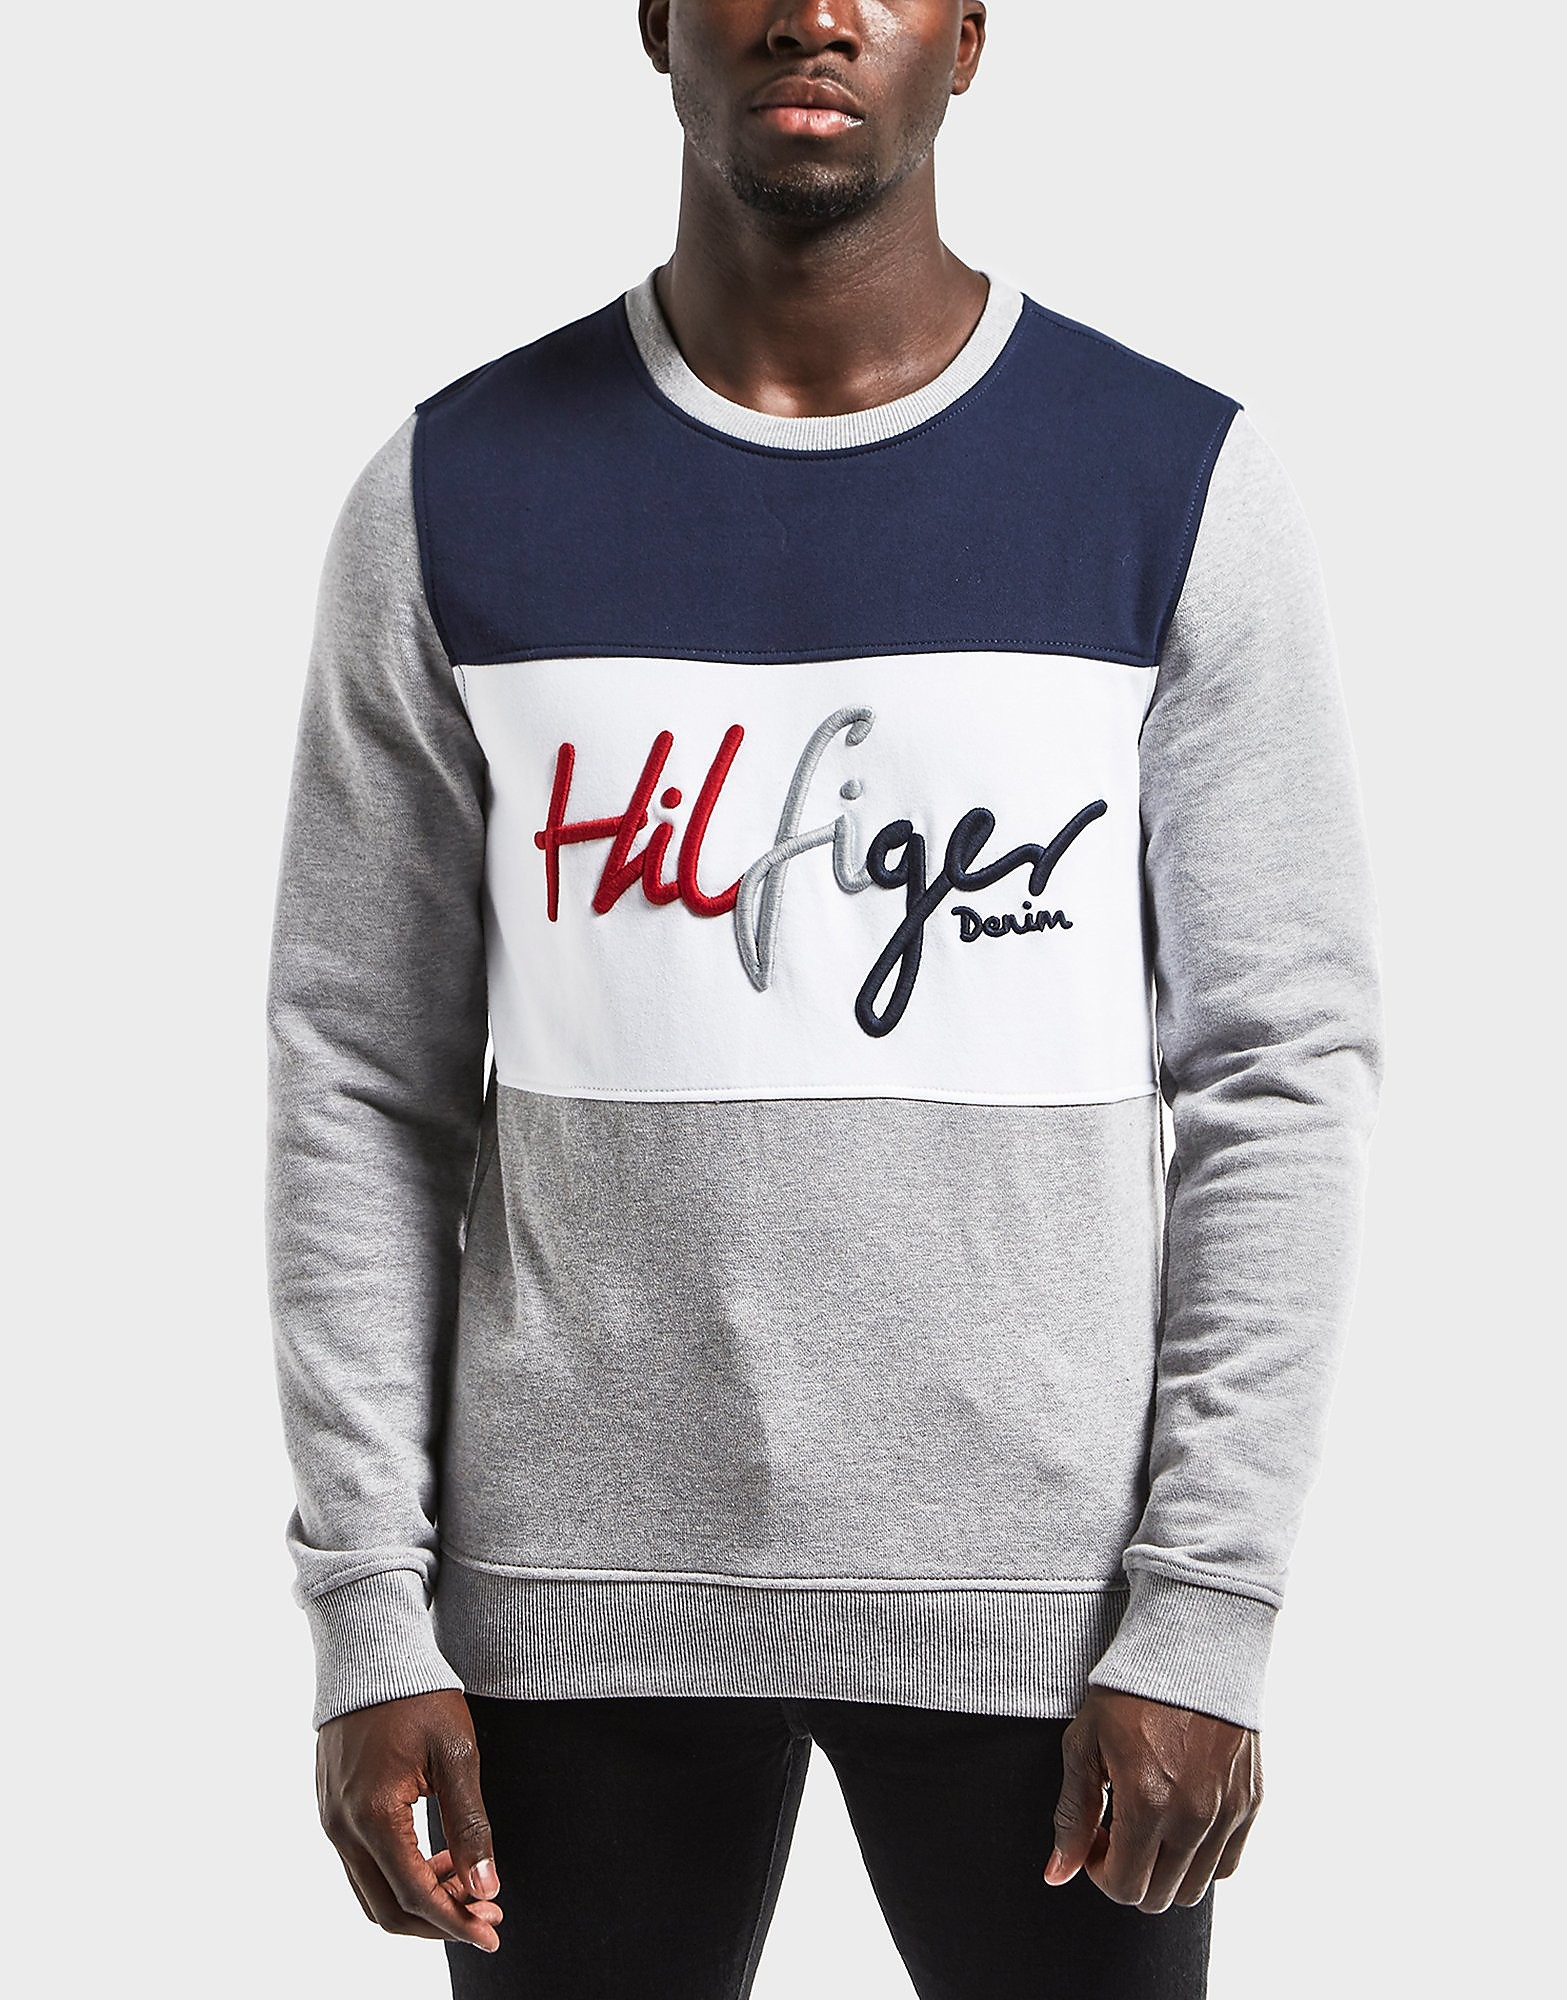 Tommy Hilfiger Retro Crew Neck Sweatshirt